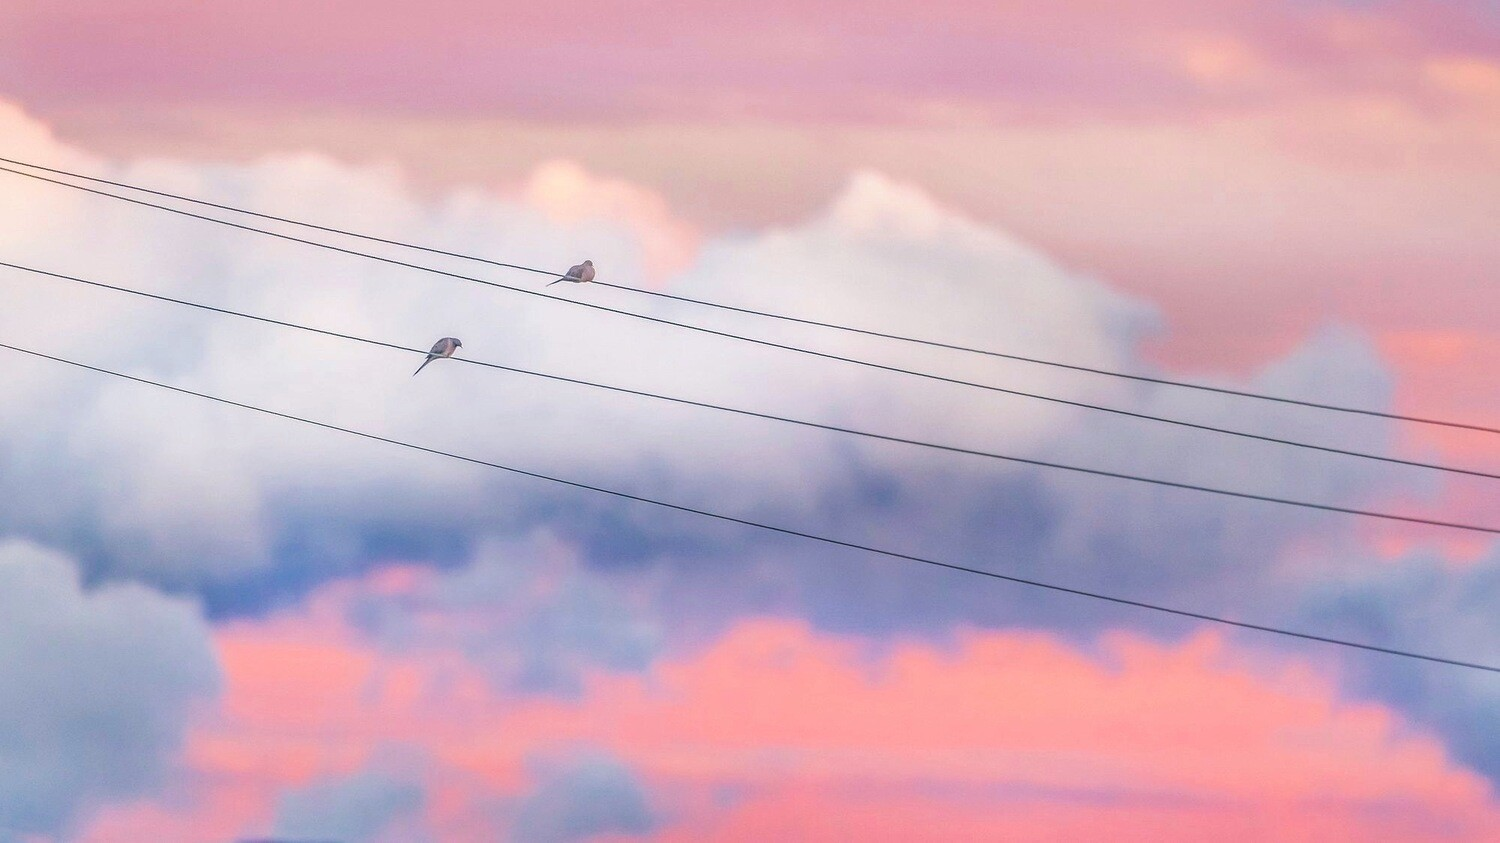 On the Wire Framed